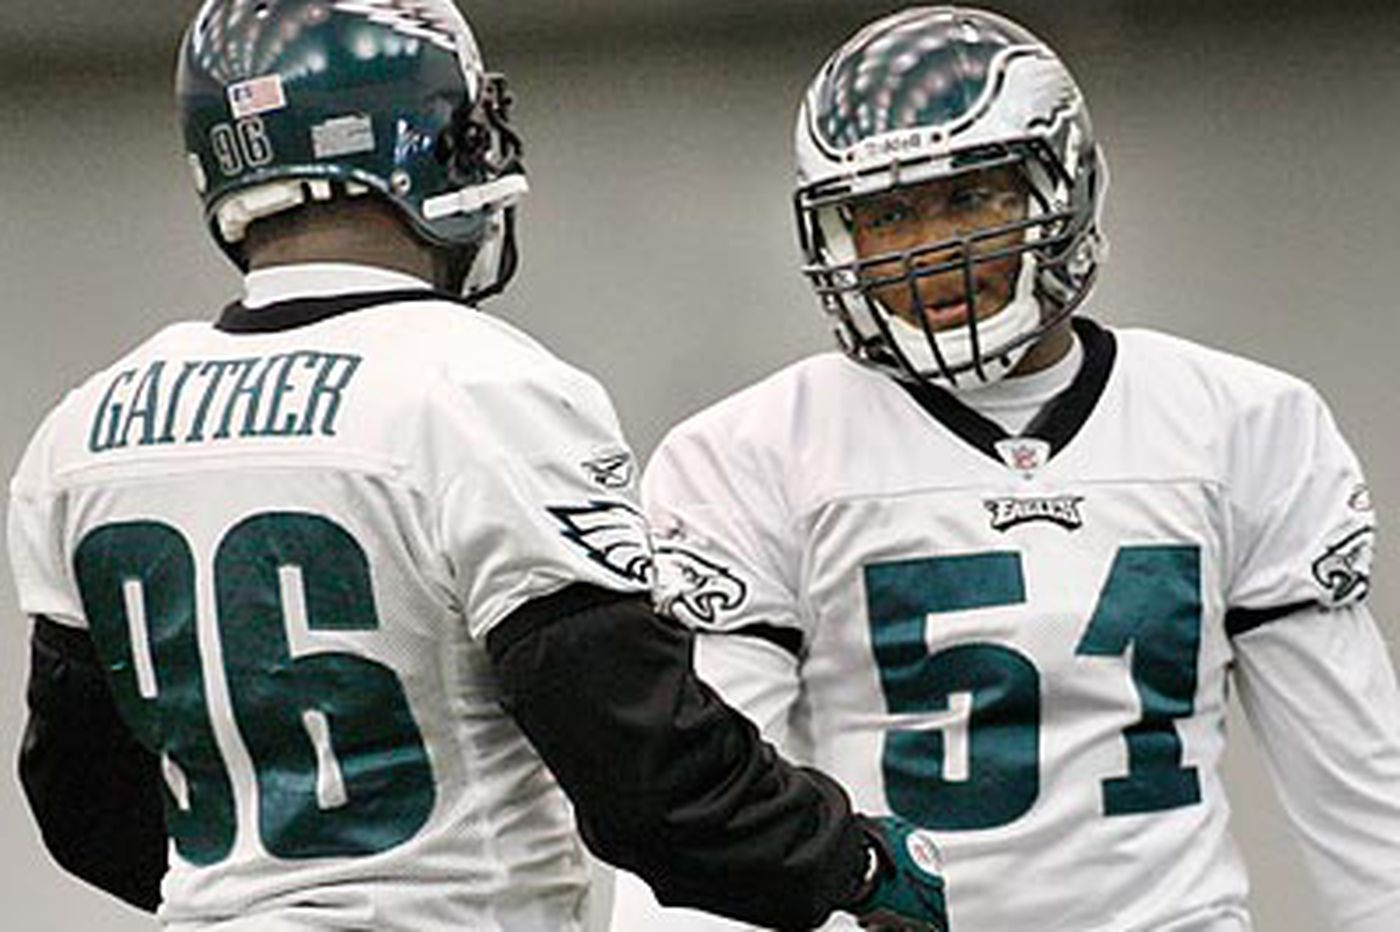 Pluses outweigh minuses with Eagles rookies